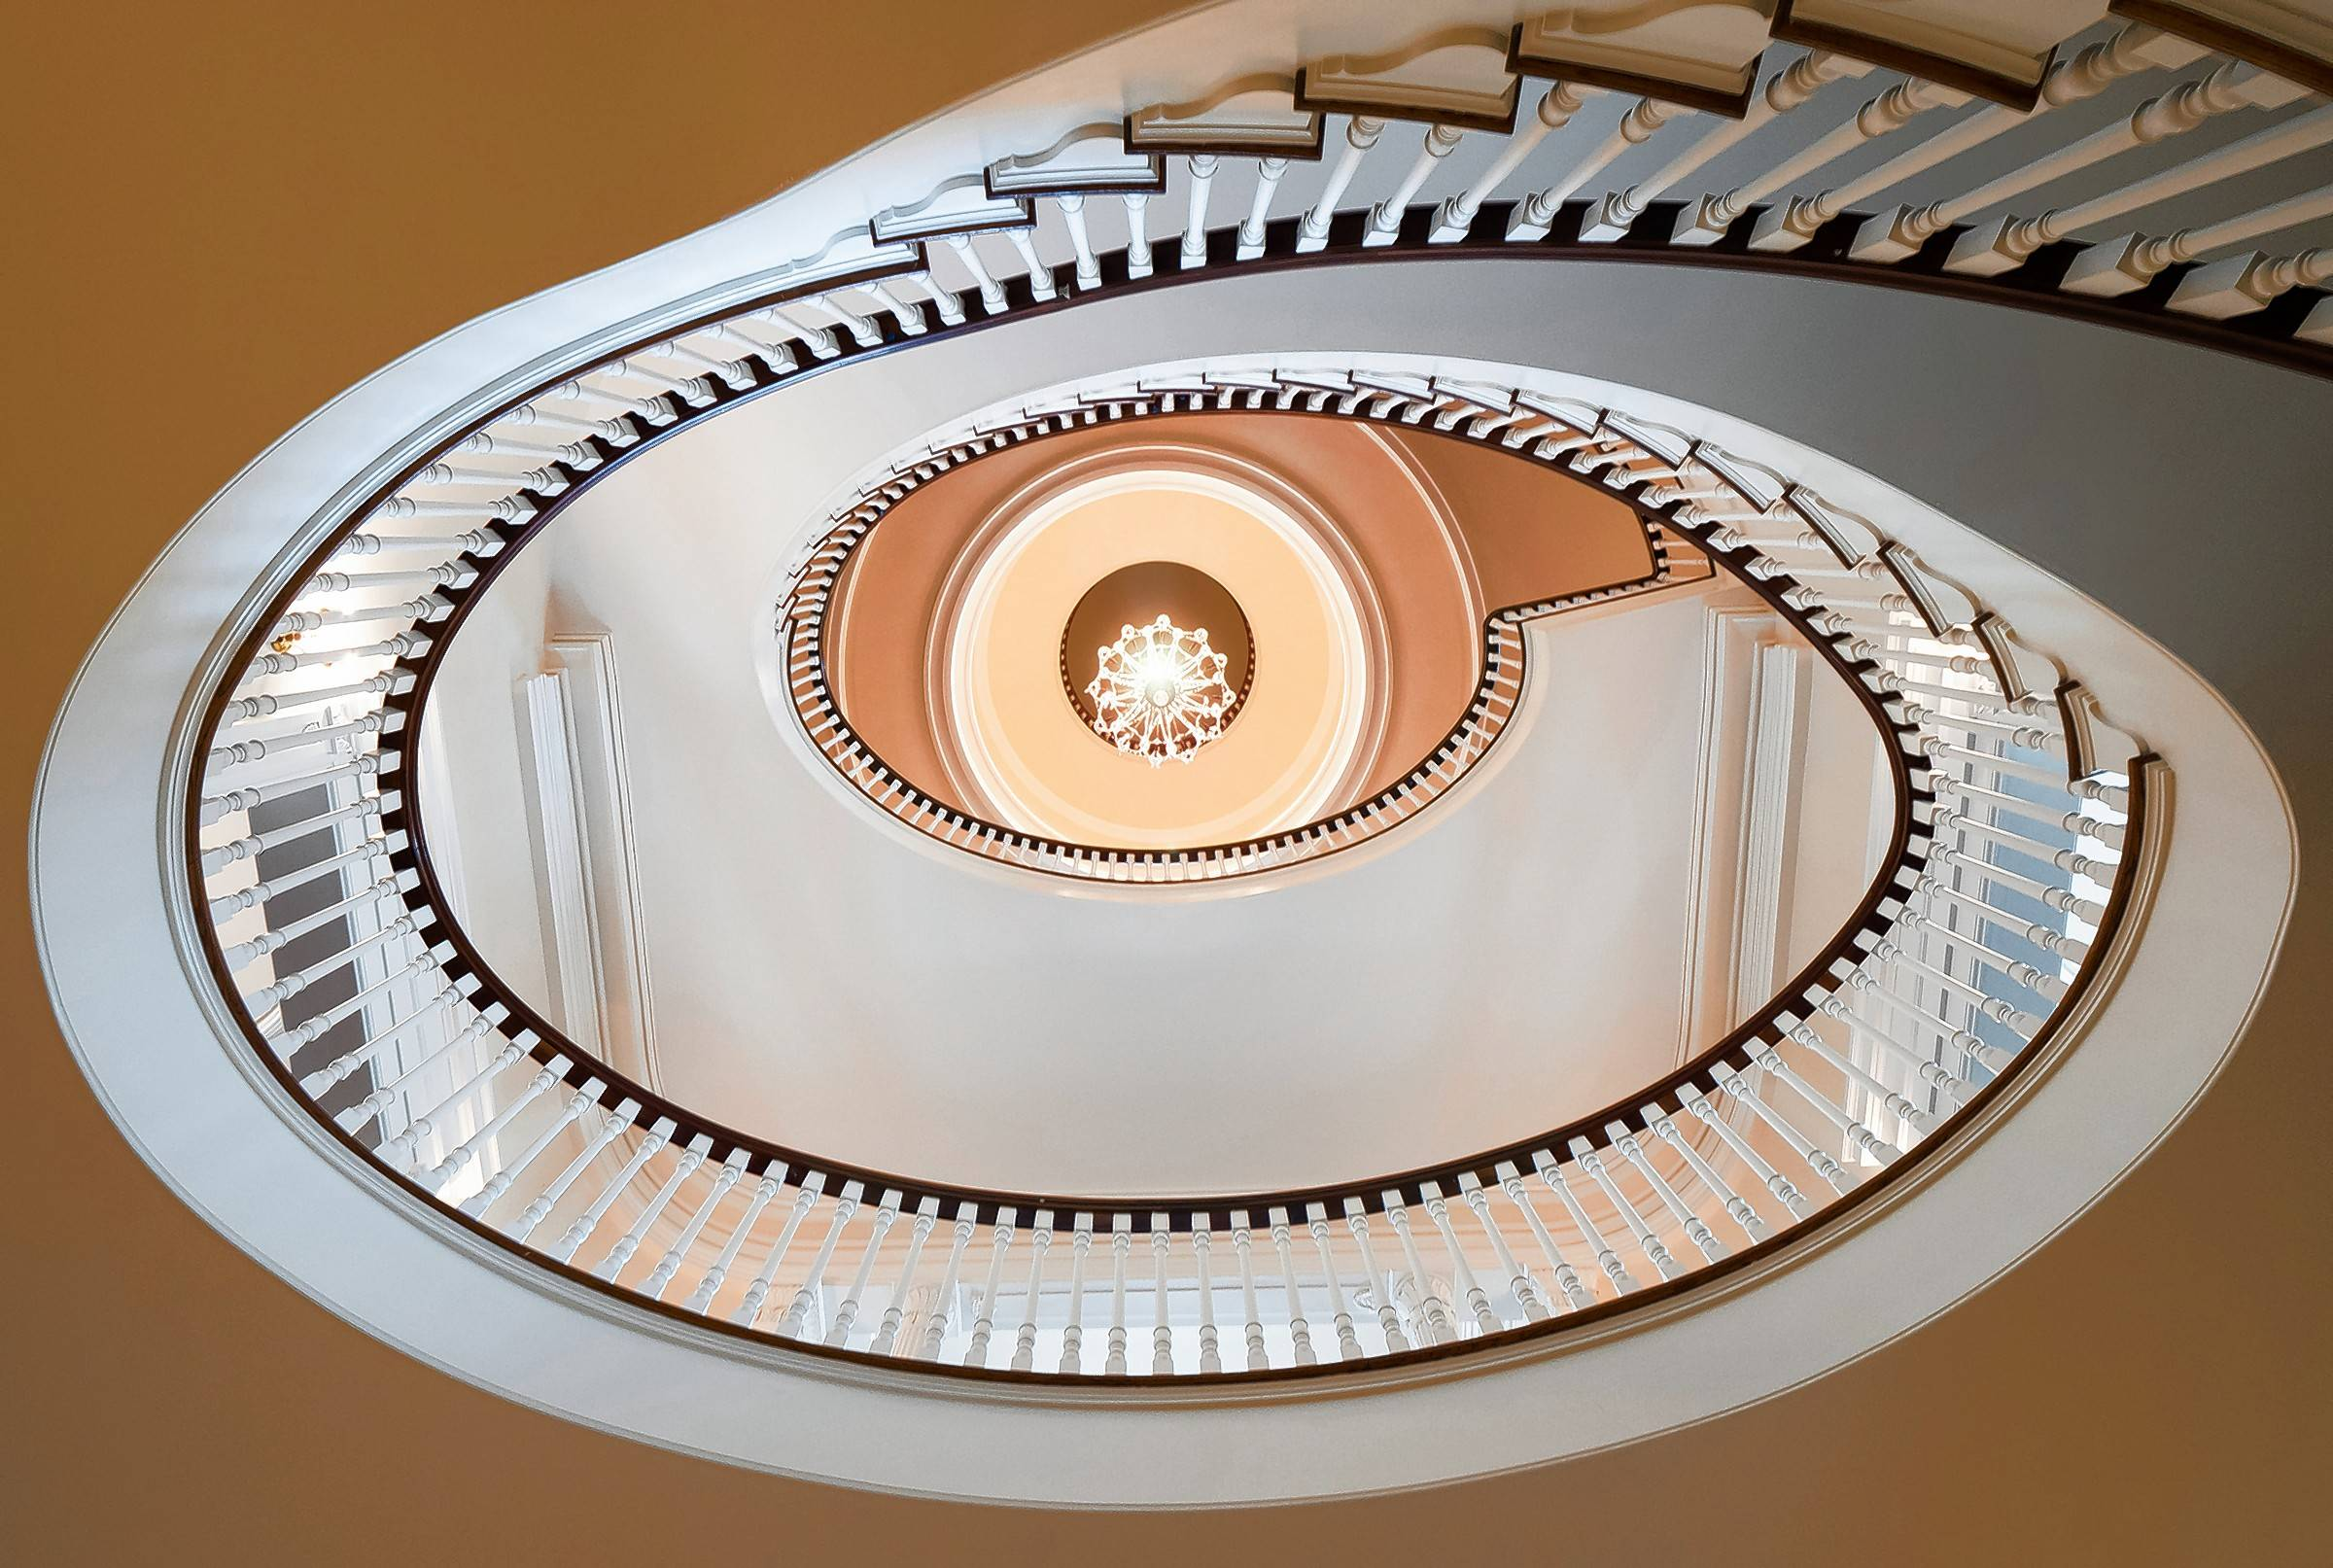 The mansion's original cupola can still be seen from the grand circular staircase inside.